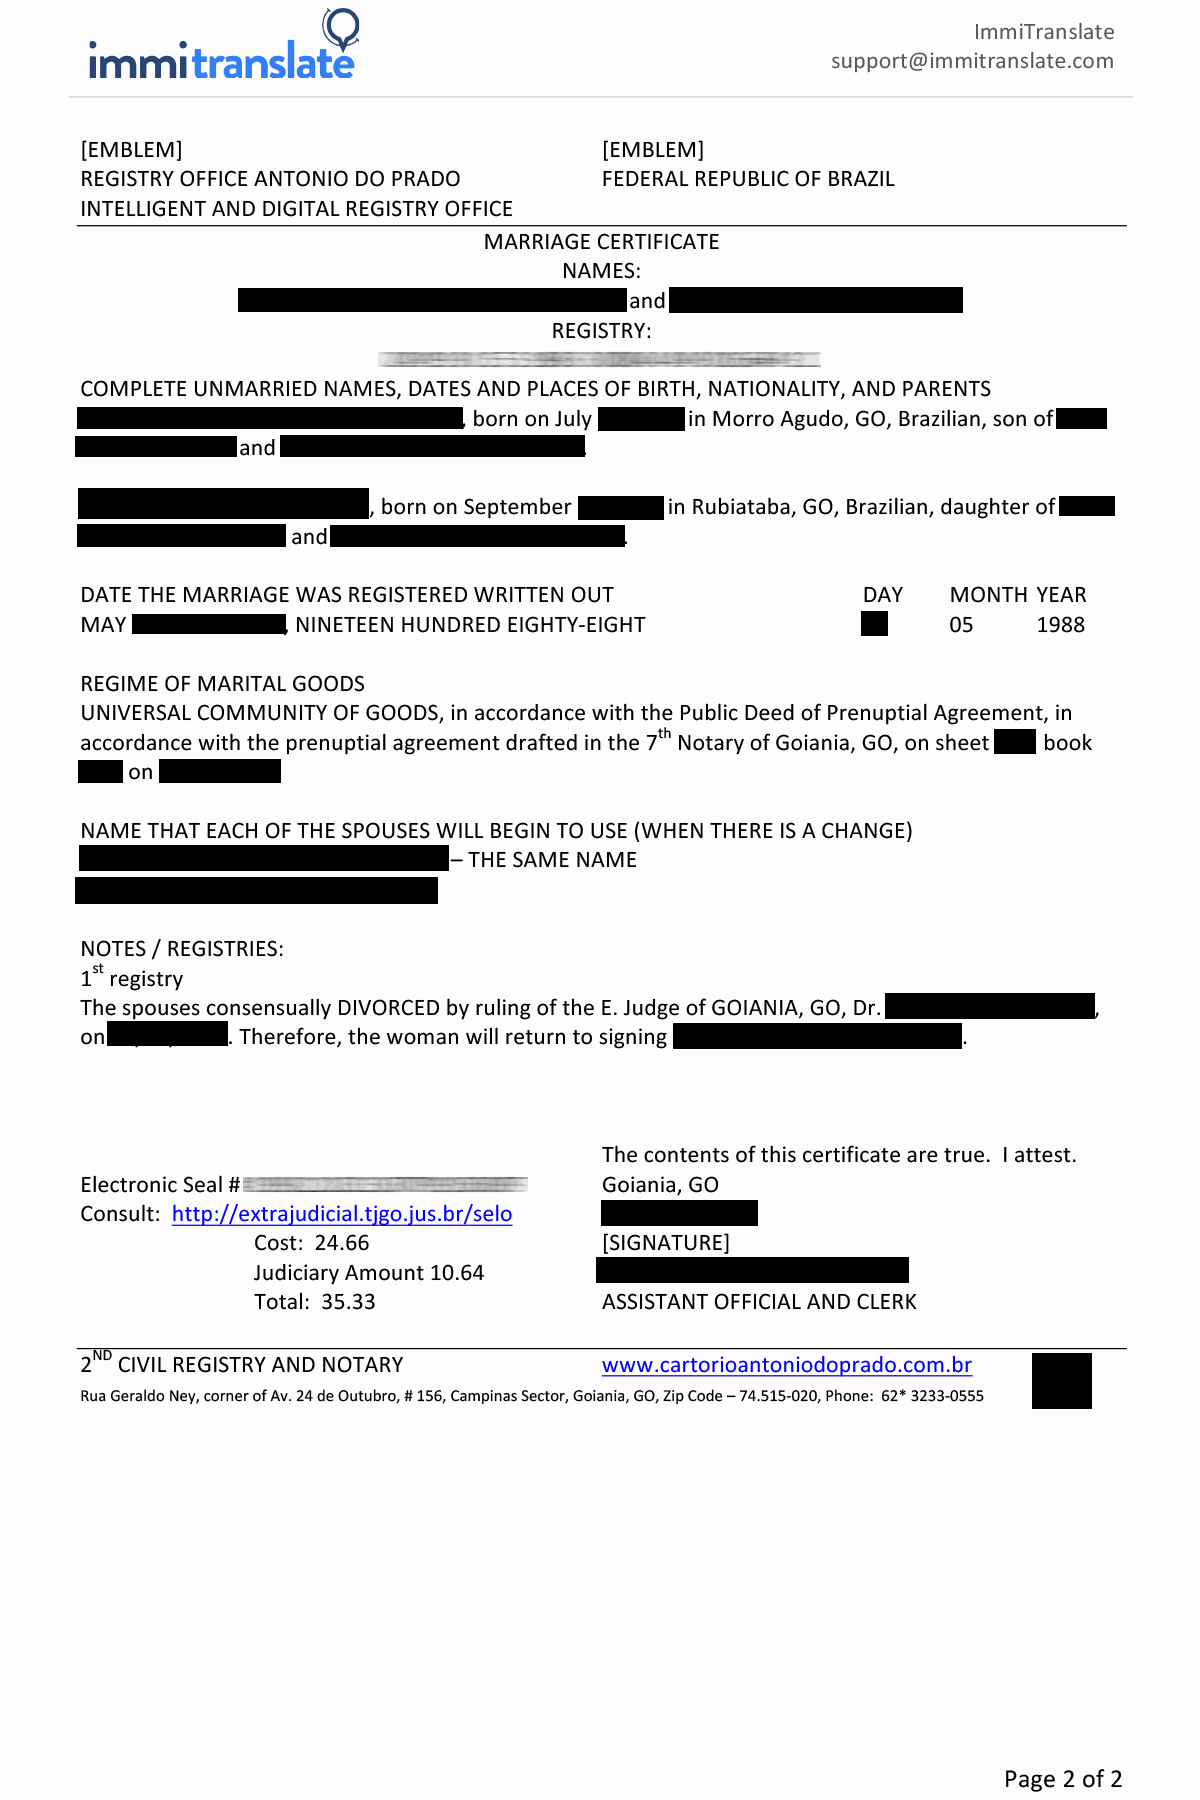 Birth Certificate Translation From Spanish to English Template Elegant Marriage Certificate Translations